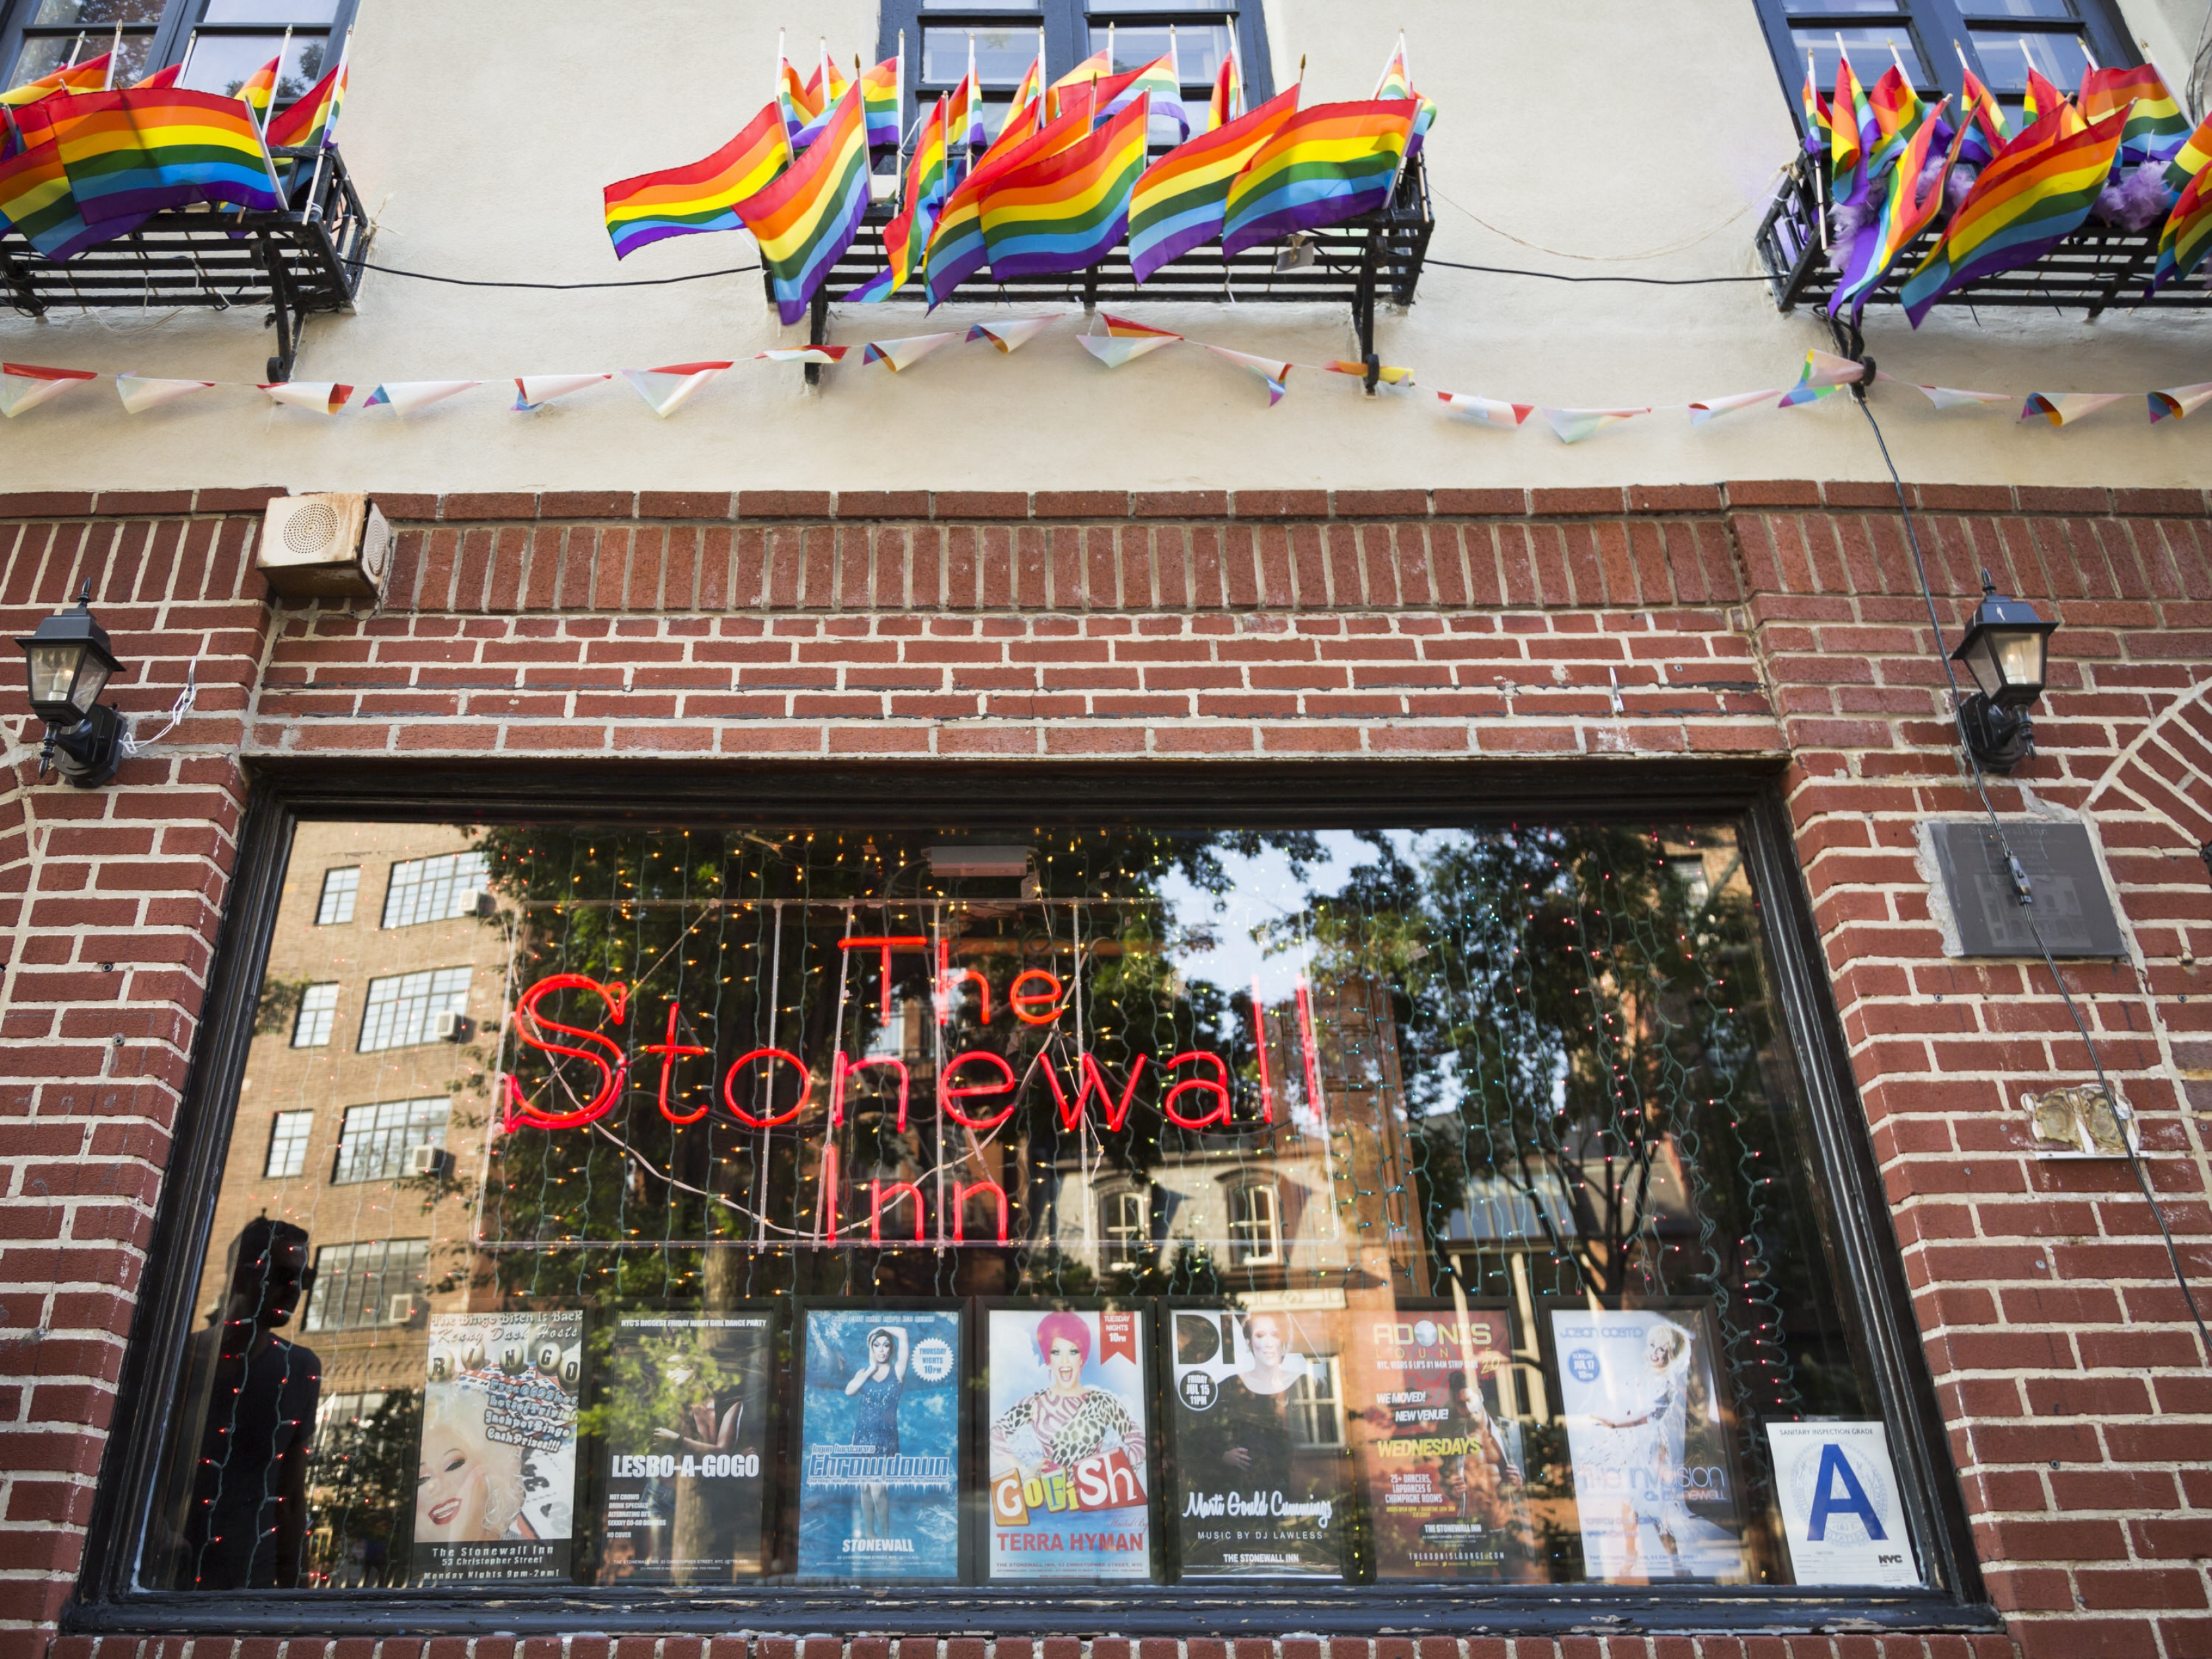 """Neone sign saying """"The Stonewall Inn"""" in a window of a brick building with many small rainbow flags flying above the window."""